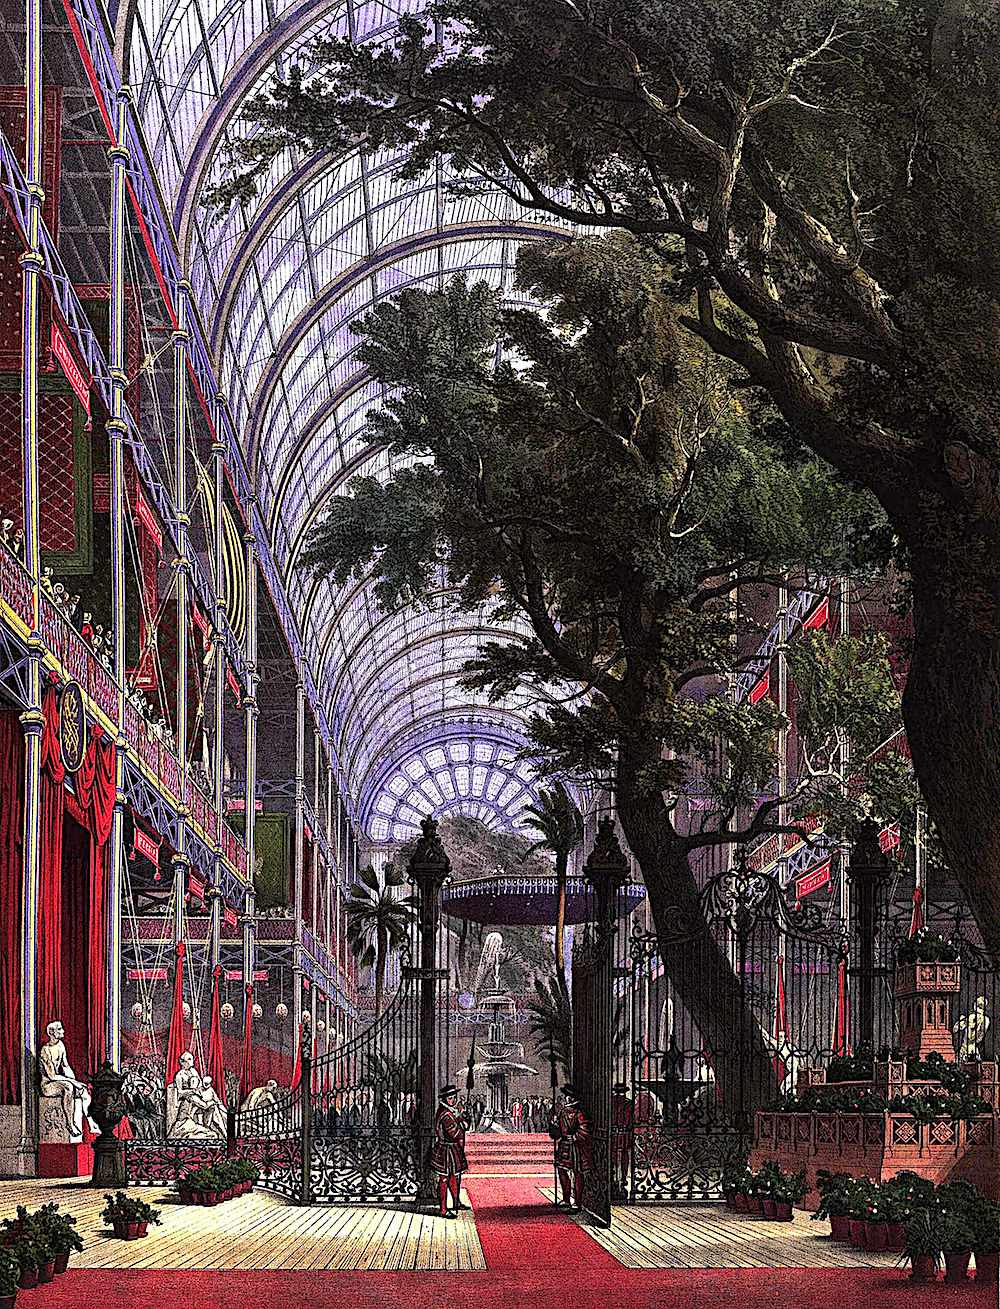 interior trees at the Crystal Palace at the 1851 Great Exhibition of London